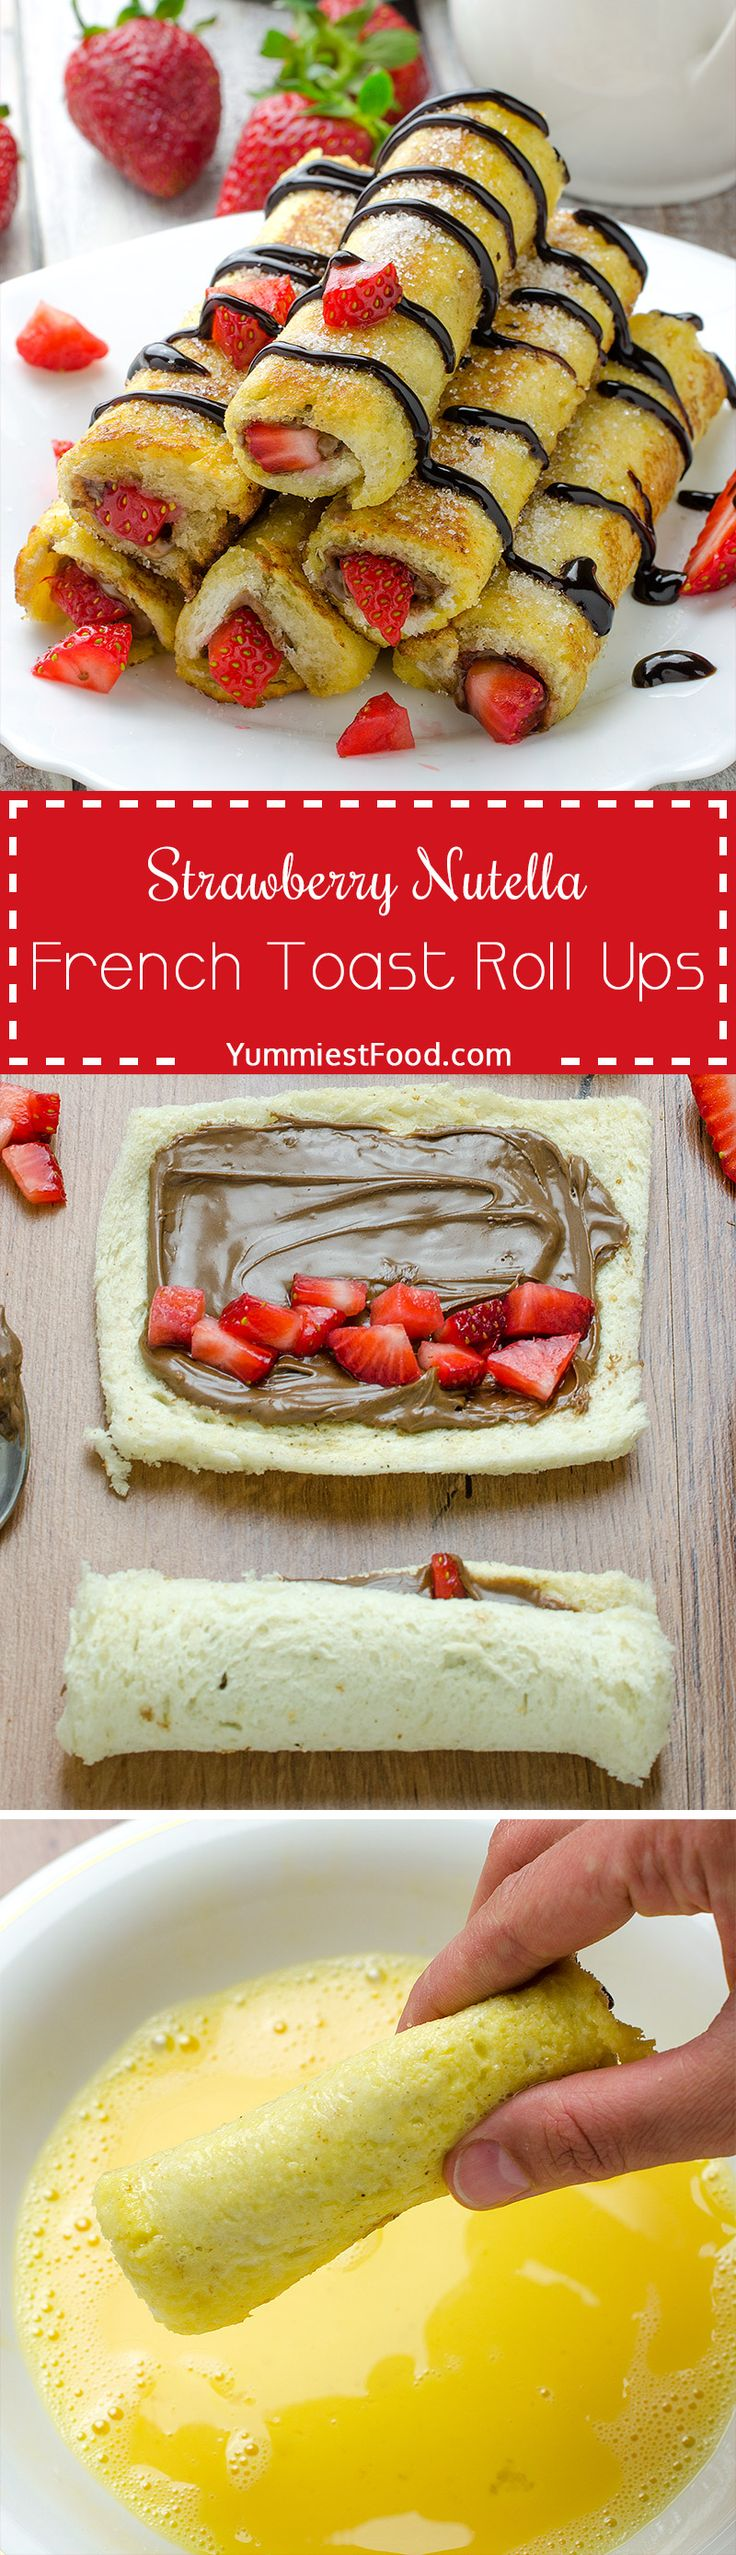 Strawberry Nutella French Toast Roll Ups are quick, delicious and easy to make! It's very tasty and sweet and perfect way to start your day! This French toast is great combination of strawberries and Nutella.